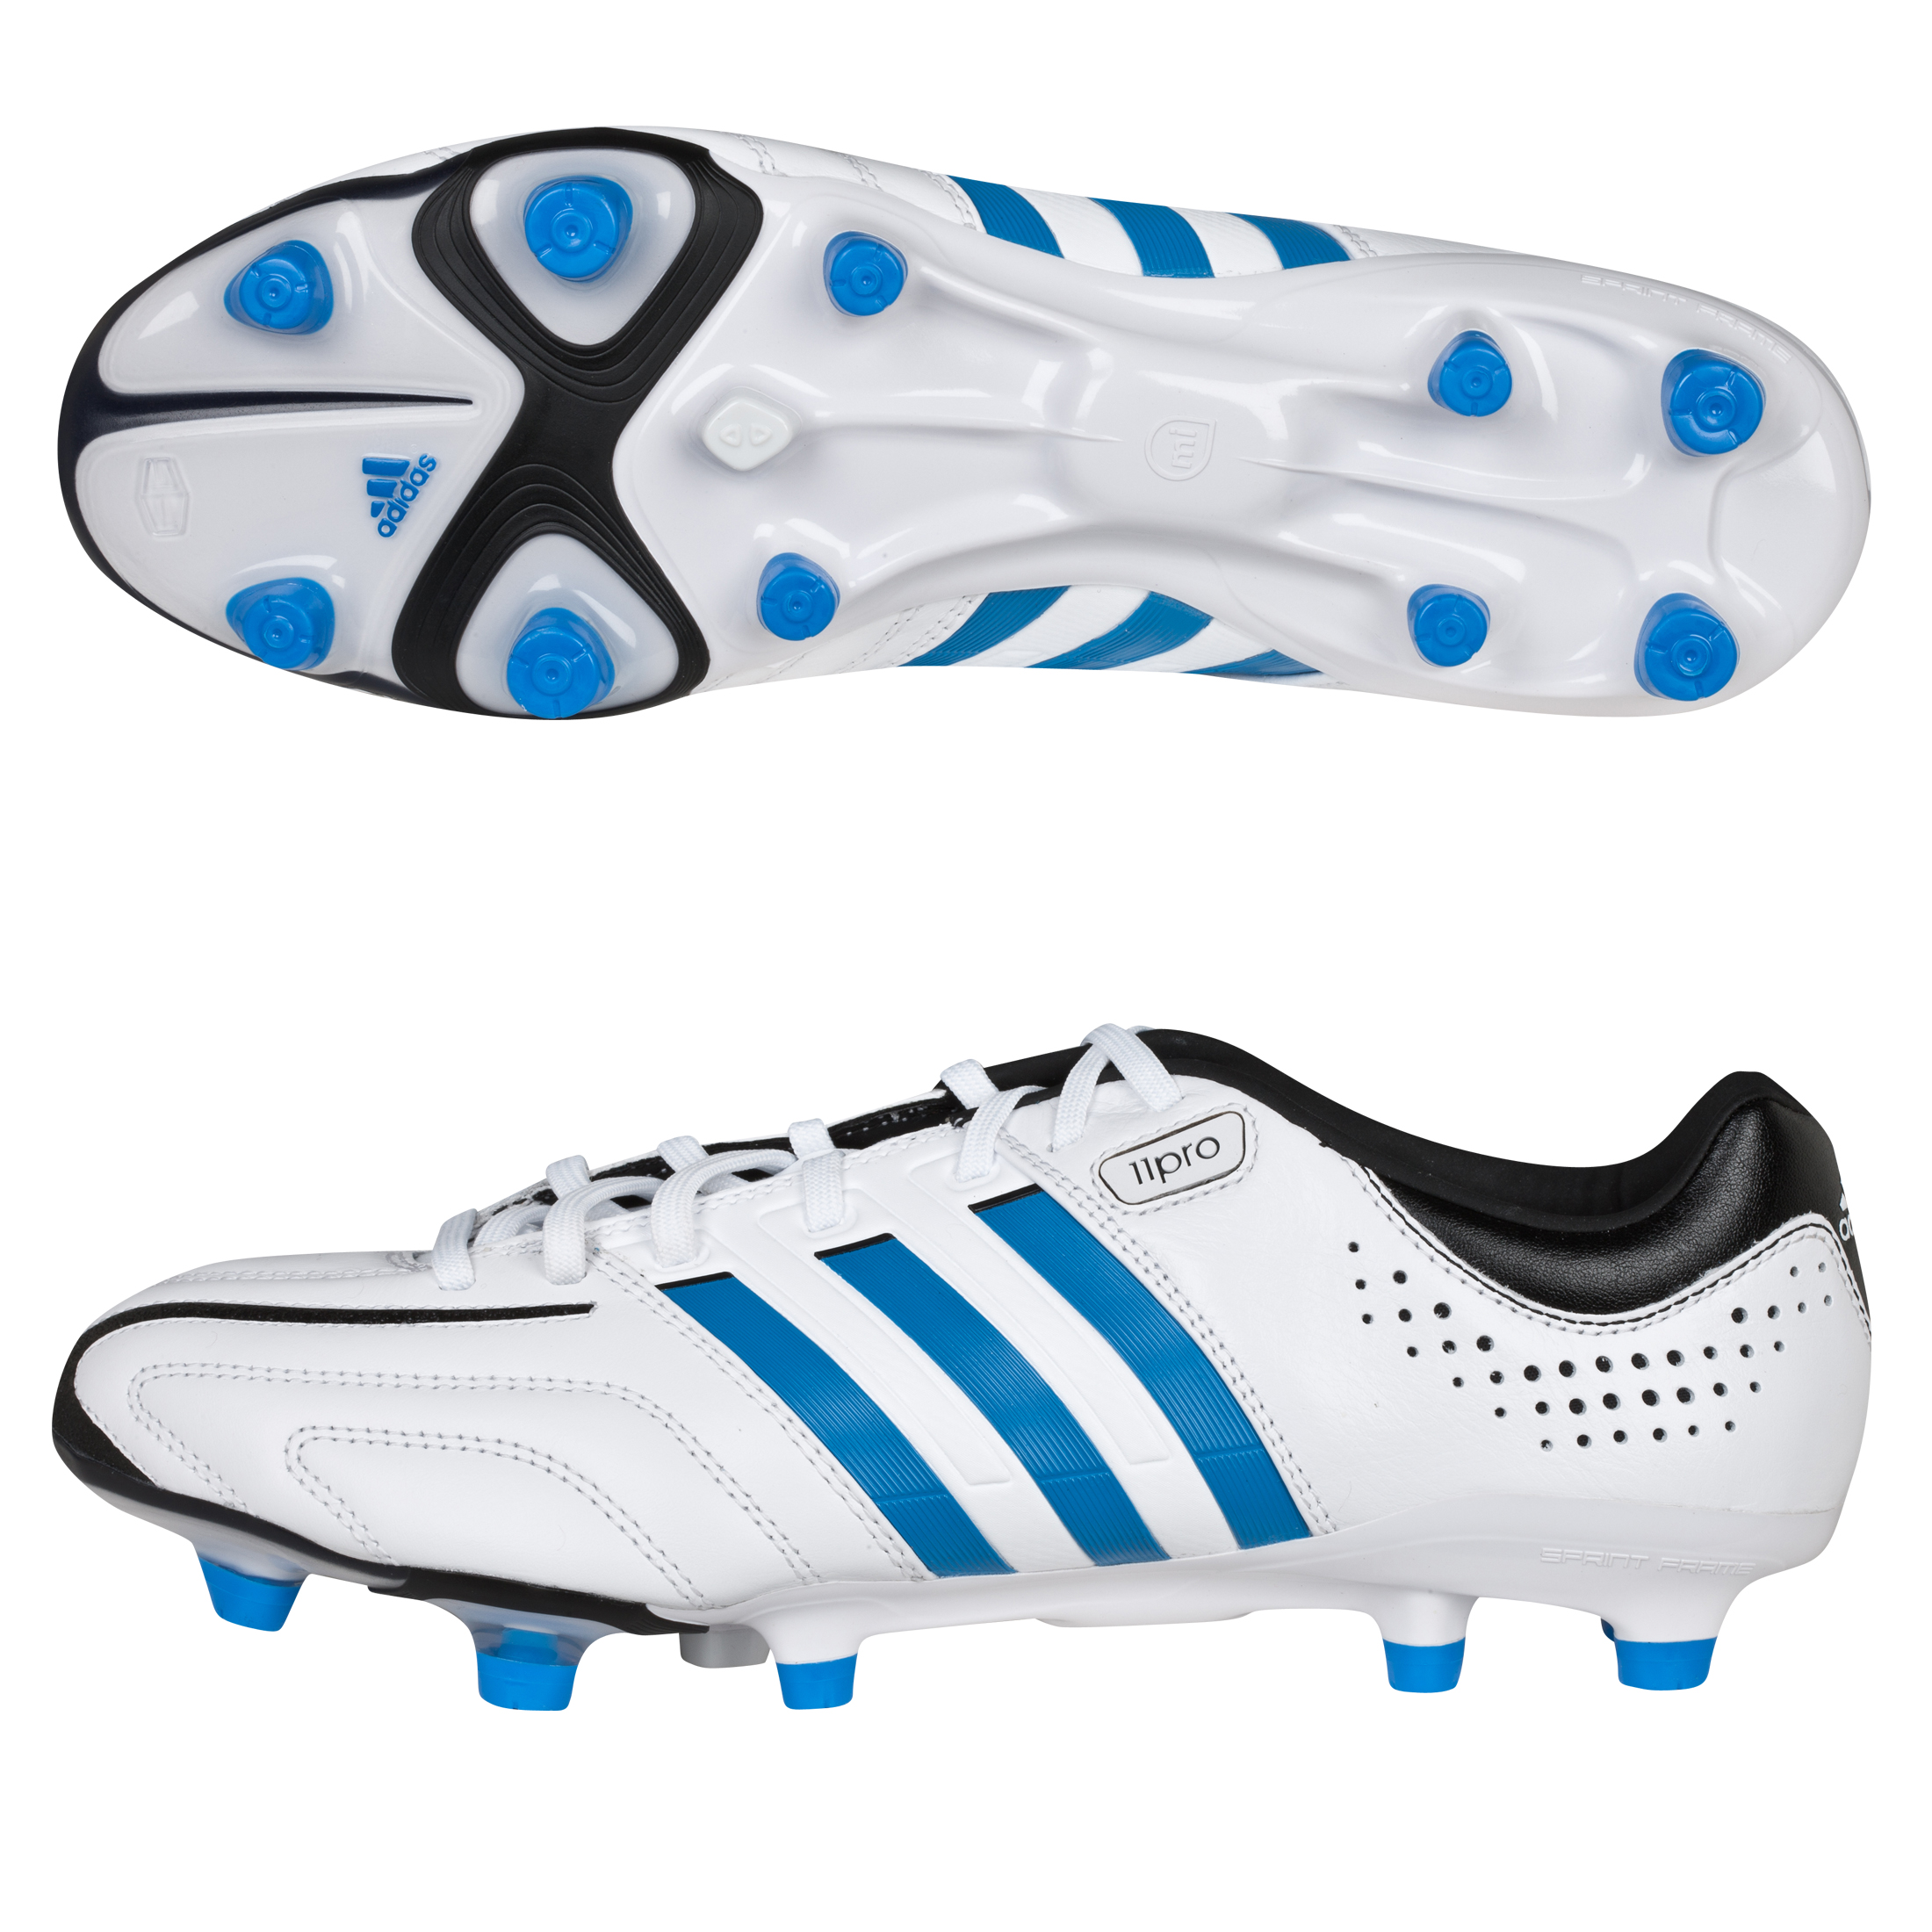 Adidas Adipure 11Pro TRX White/Bright Blue/Black